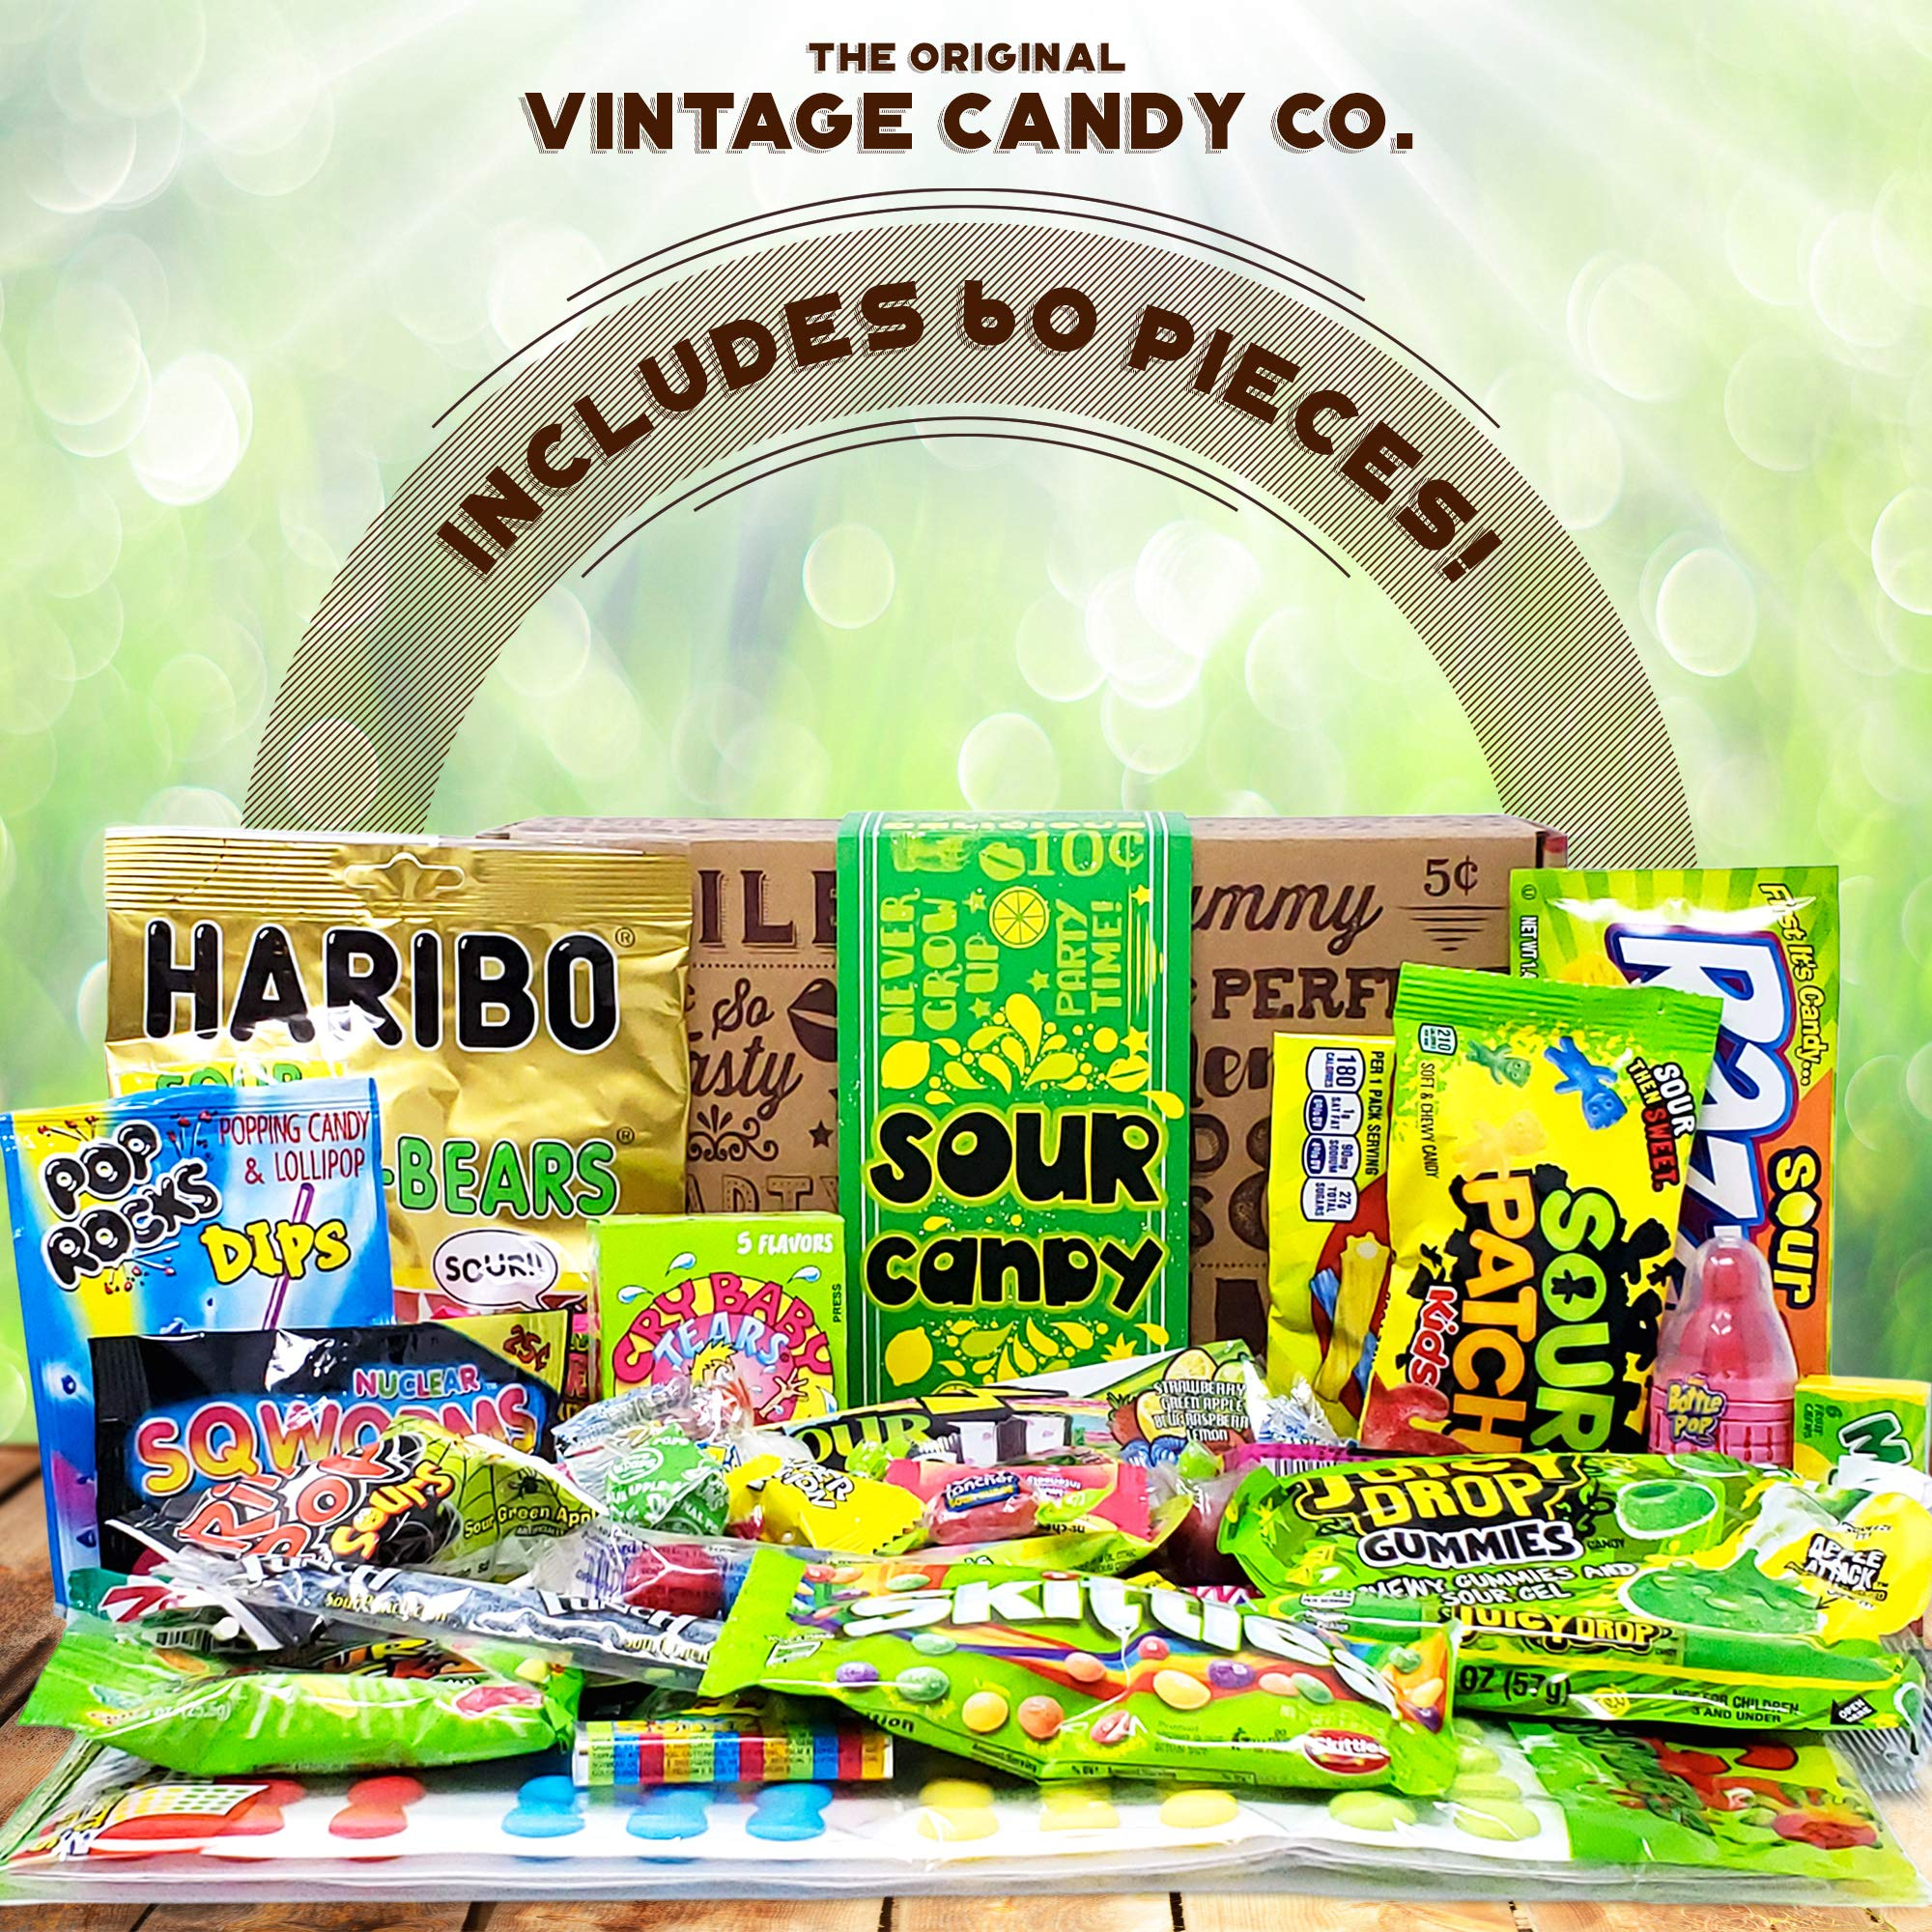 VINTAGE CANDY CO. SOUR CANDY ASSORTMENT GIFT BOX - Best Candy Variety Mix Care Package - Unique & Fun Gag Gift Basket - PERFECT For Man Or Woman Who LOVES SOUR Candy by Vintage Candy Co. (Image #2)